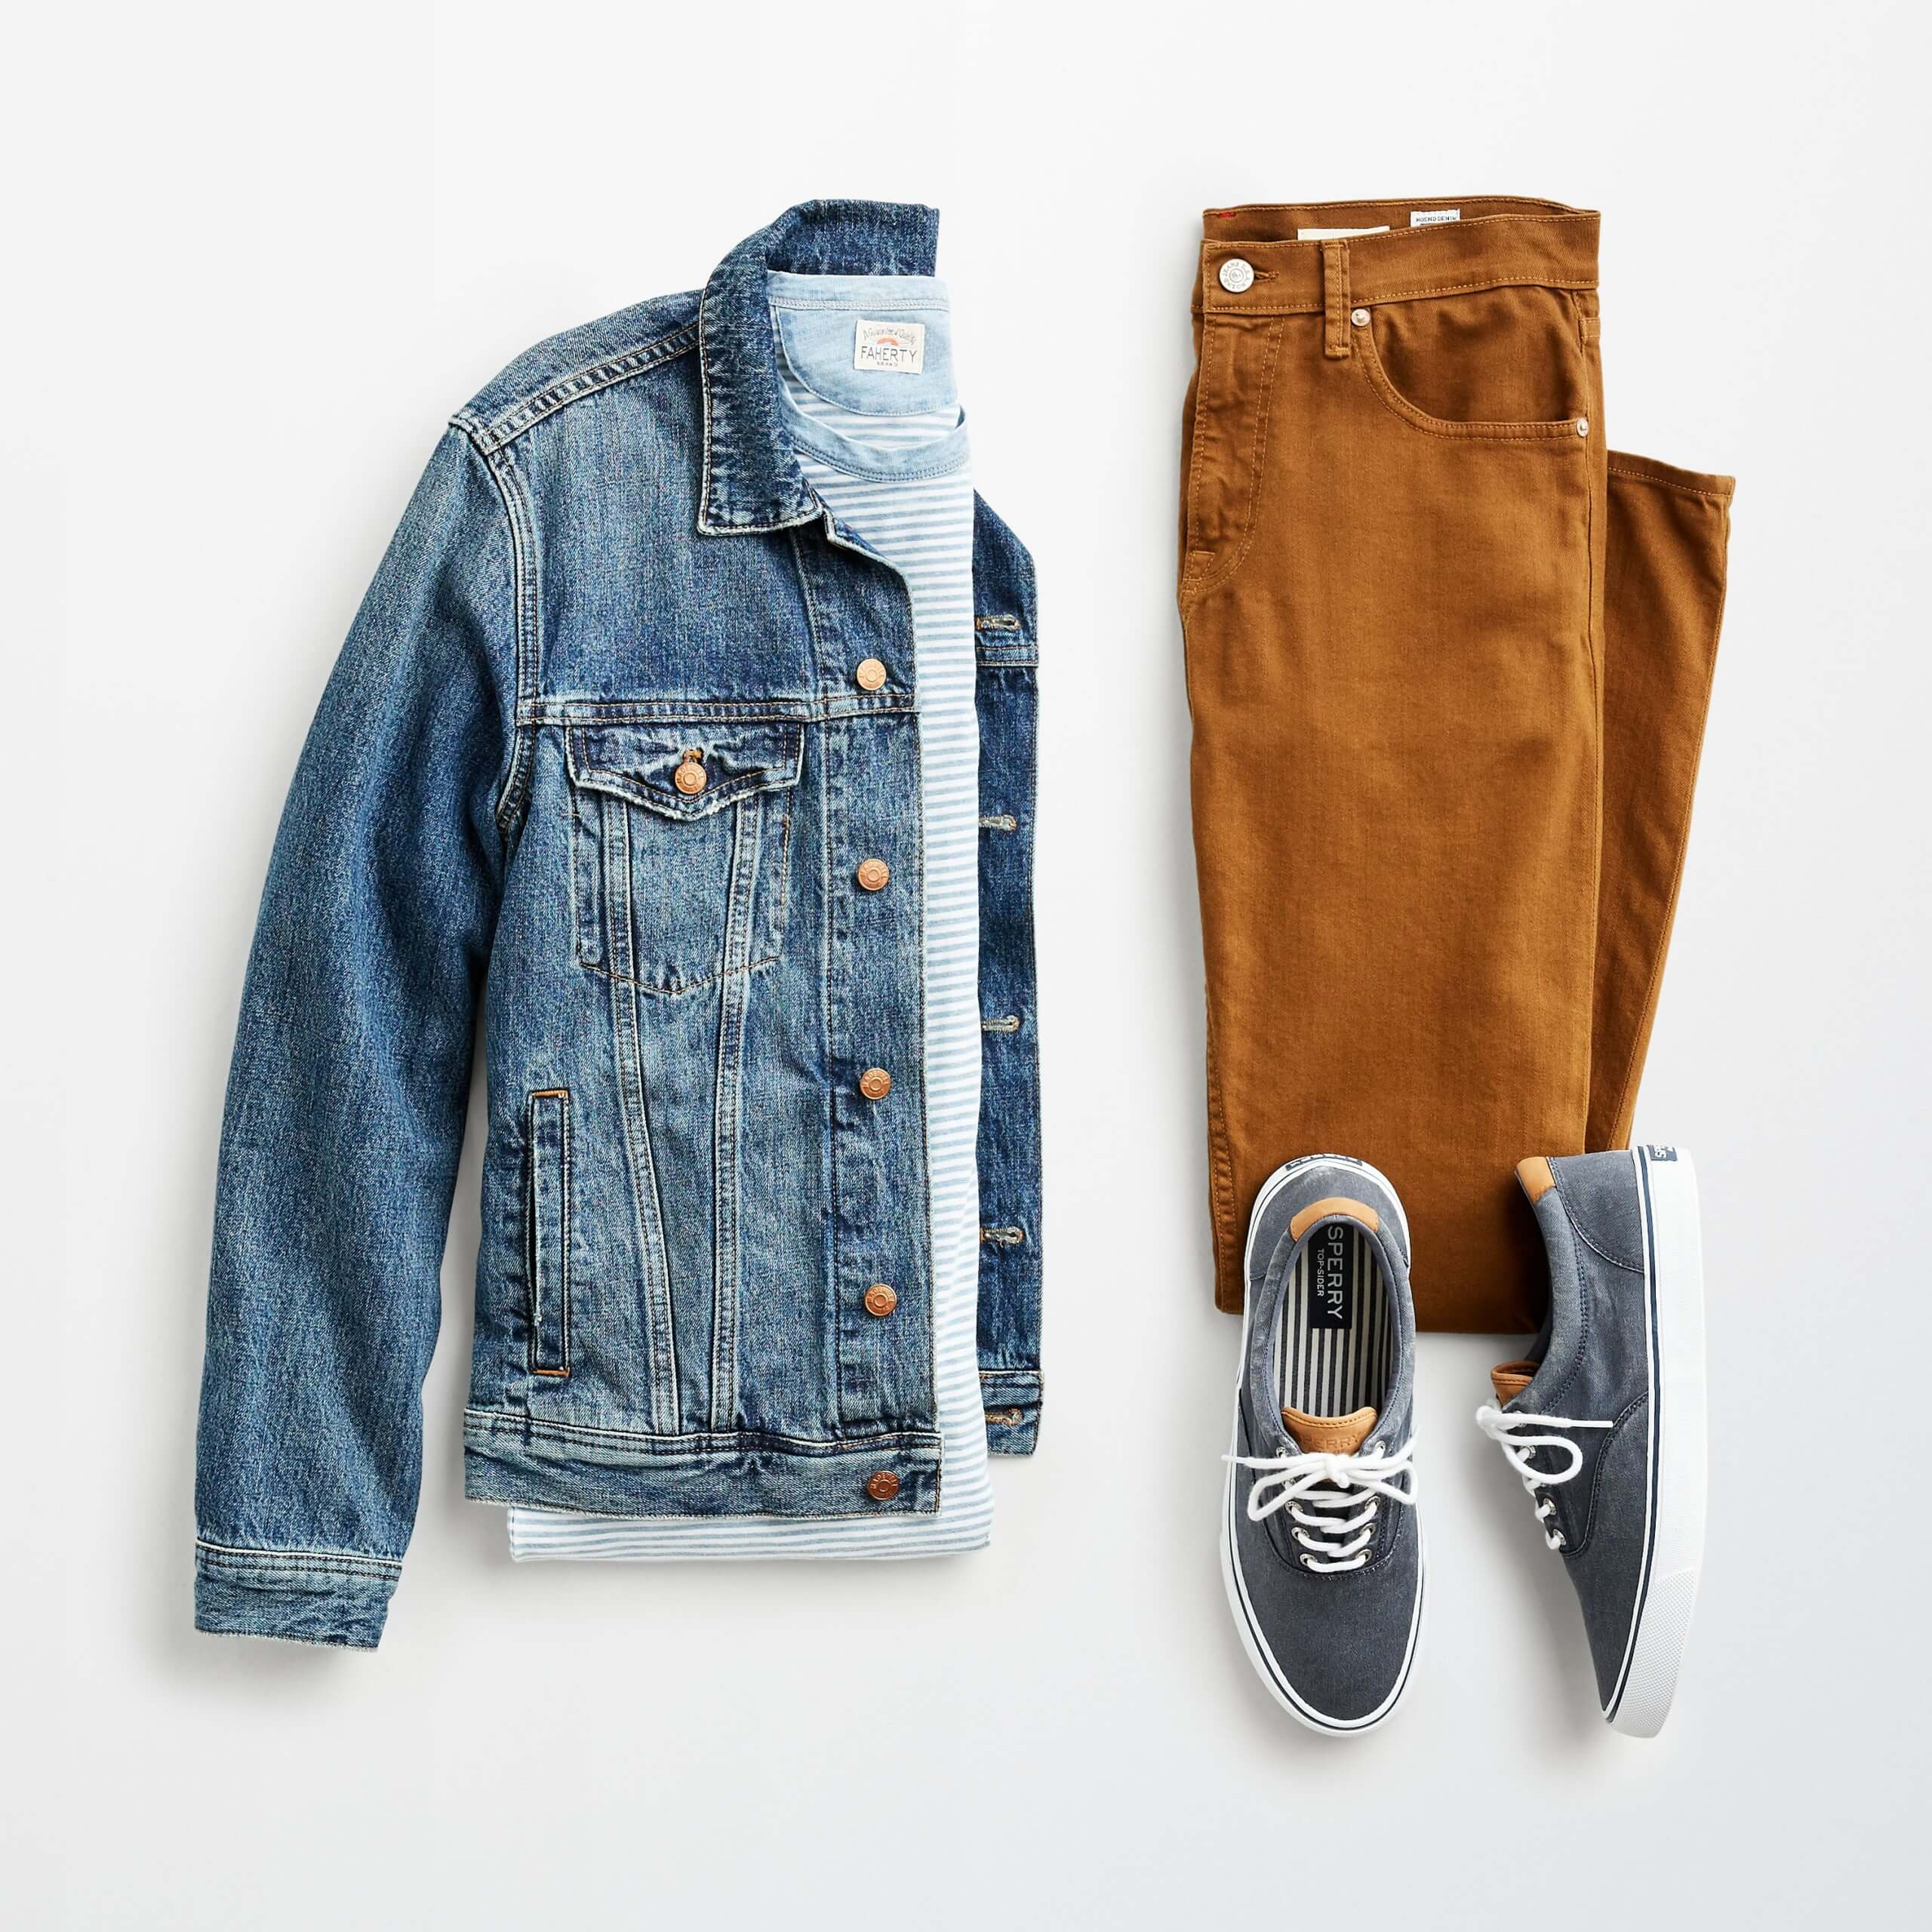 Stitch Fix jean jacket men's outfit laydown with blue jean jacket, light blue striped T-shirt, brown jeans and navy lace-up canvas sneakers.